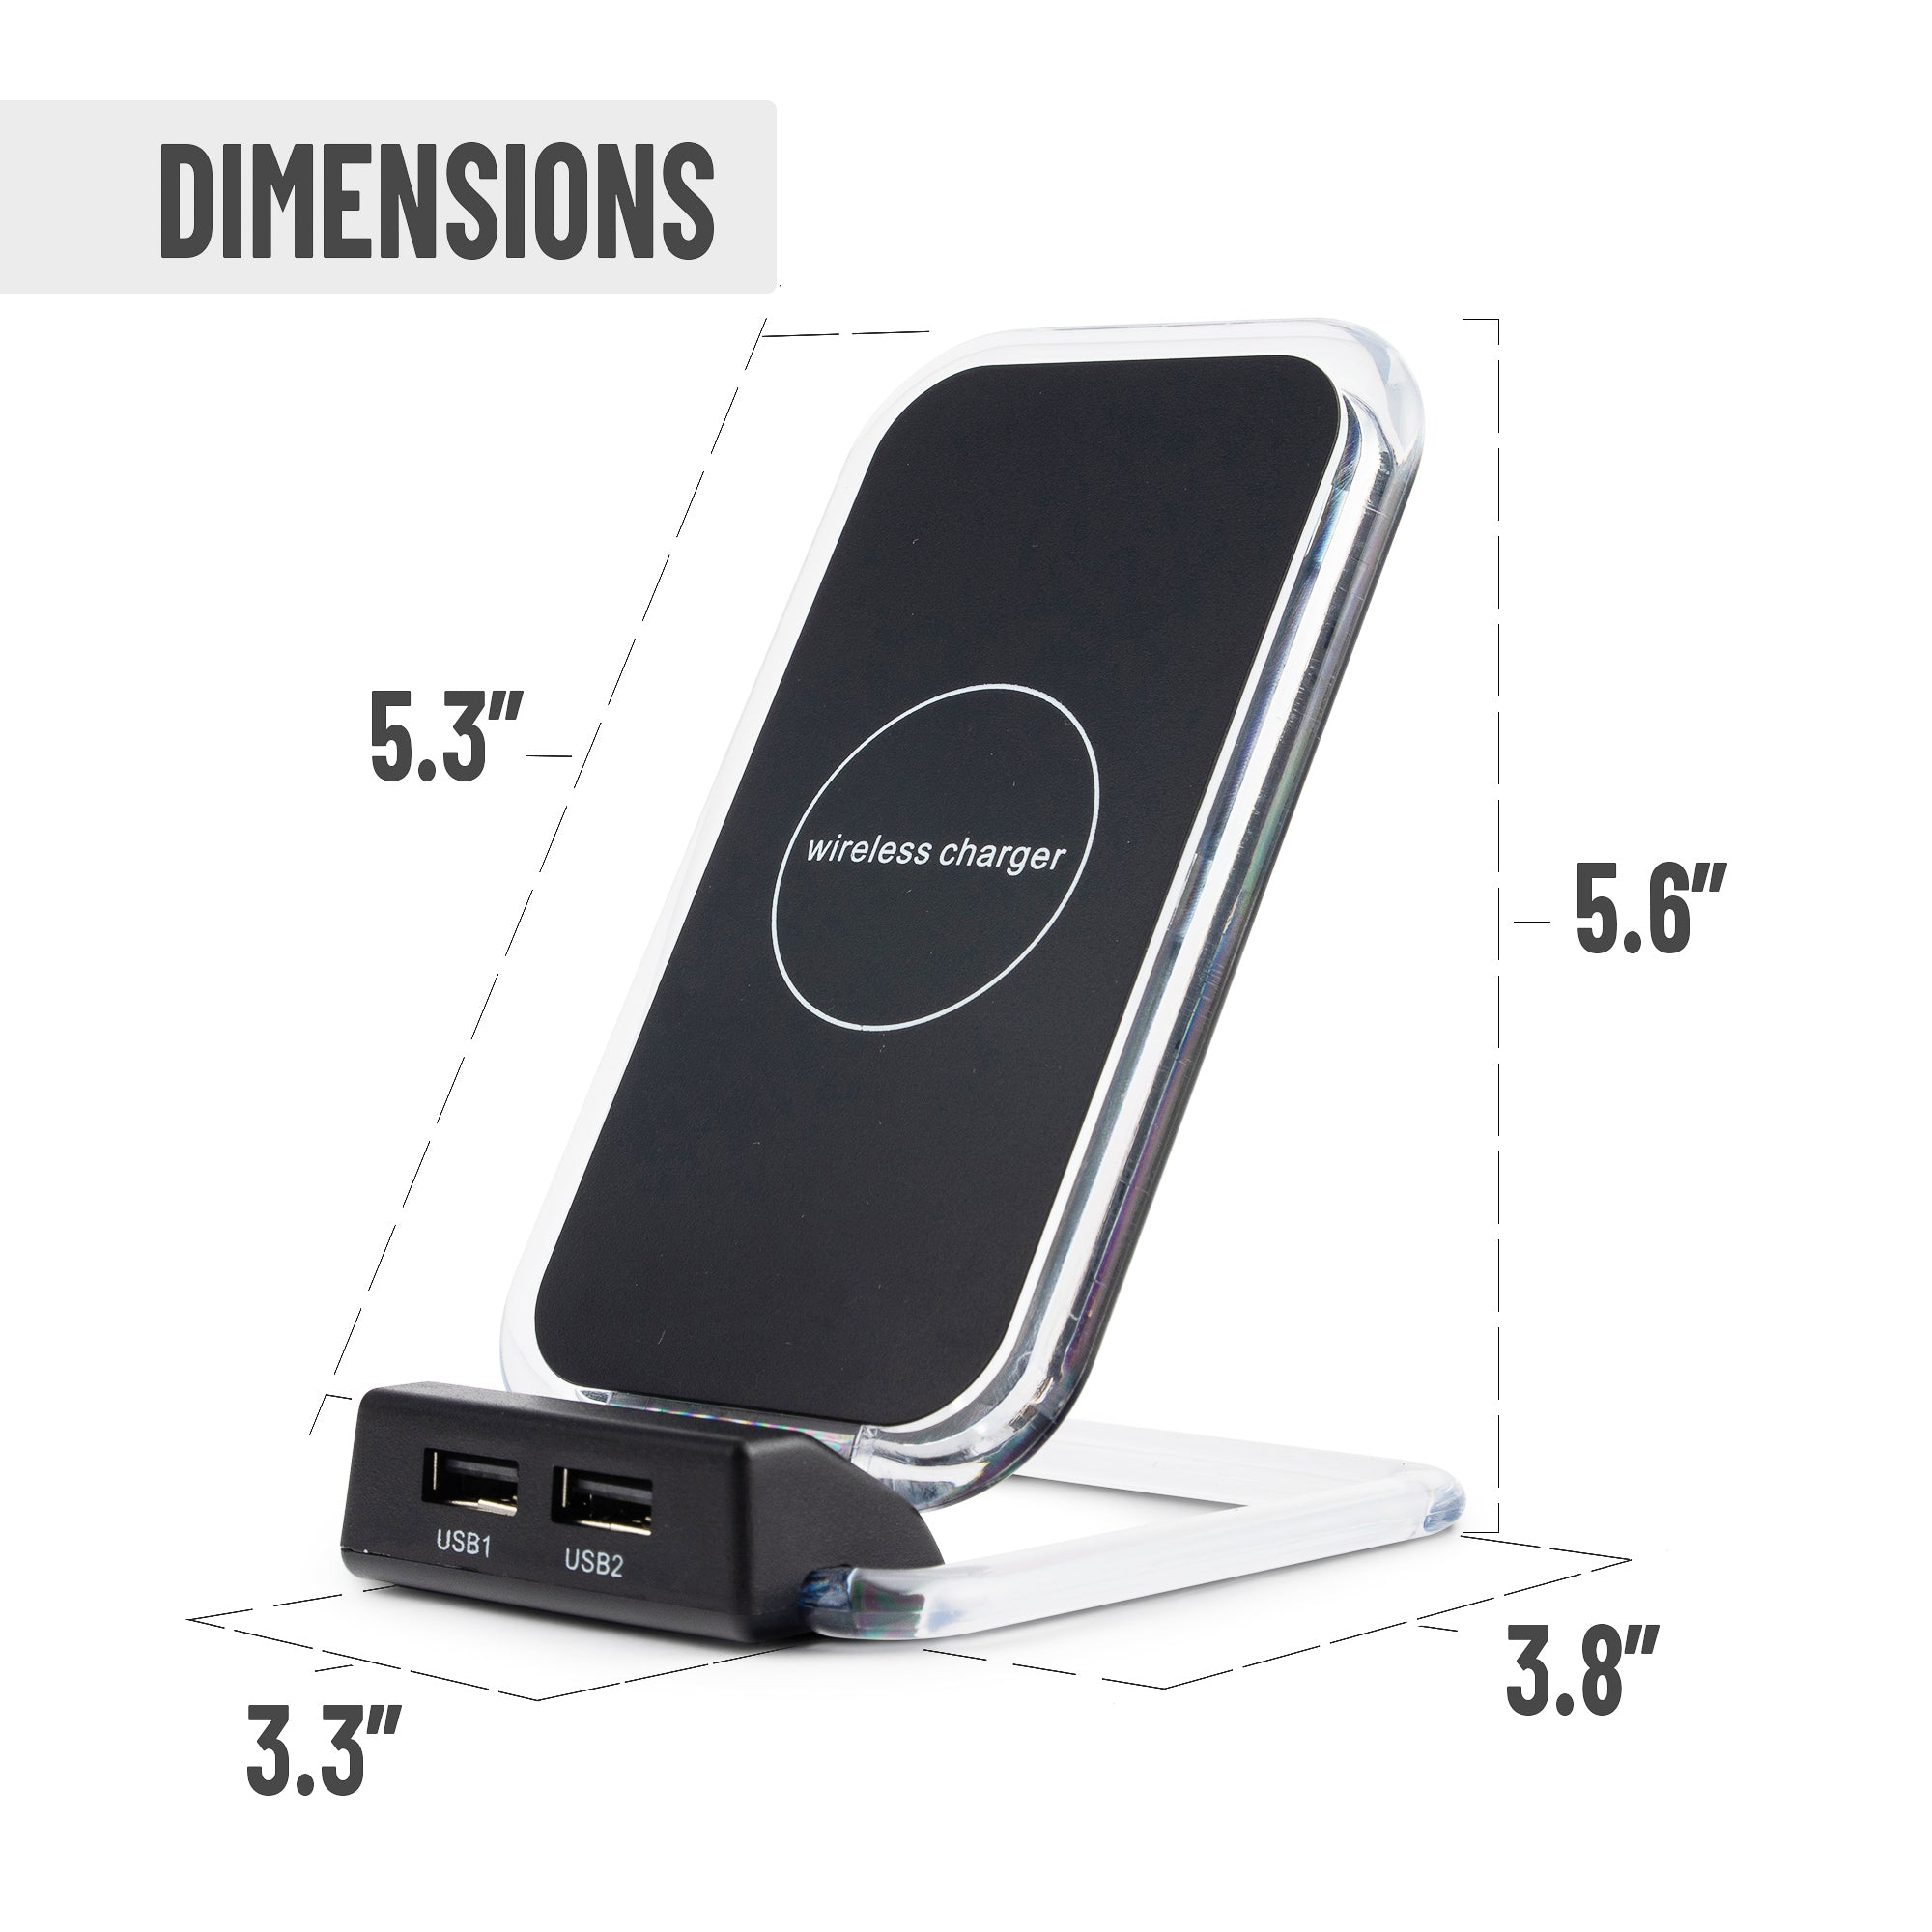 Professional Amazon Product Photography Infographic Design Example - Wireless Charger